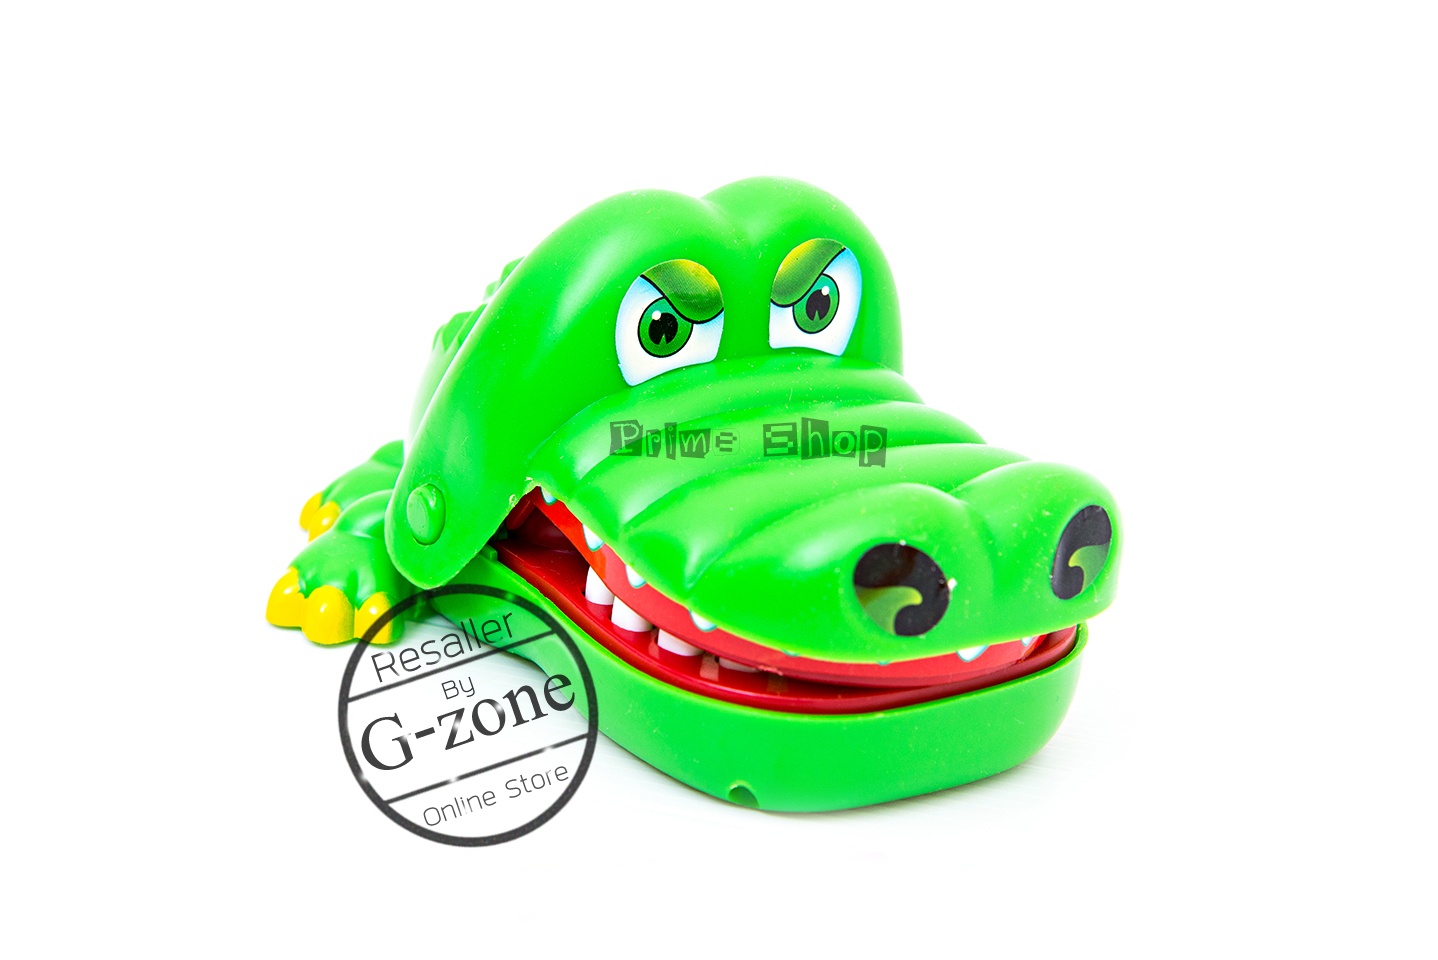 Crocodile Dentist G Zone Online Store Inspired By